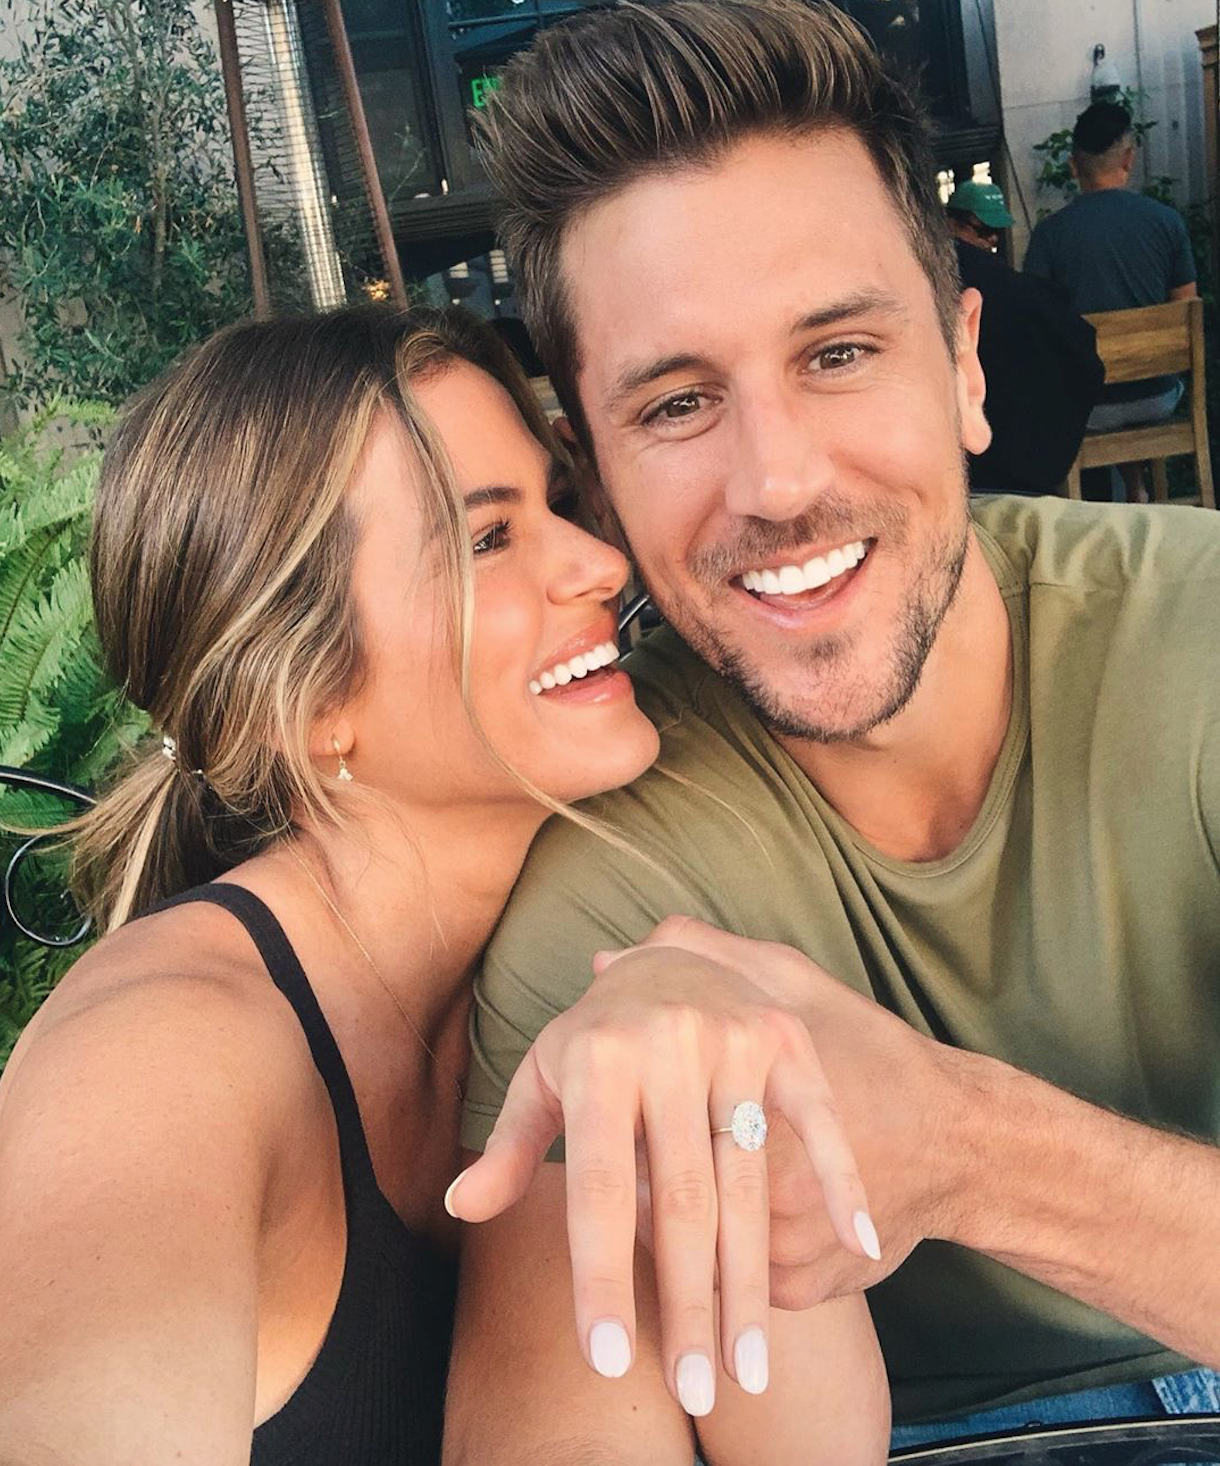 Jordan Rodgers Re-Proposes to Jojo Fletcher with New Ring 3 Years After Getting Engaged on The Bachelorette